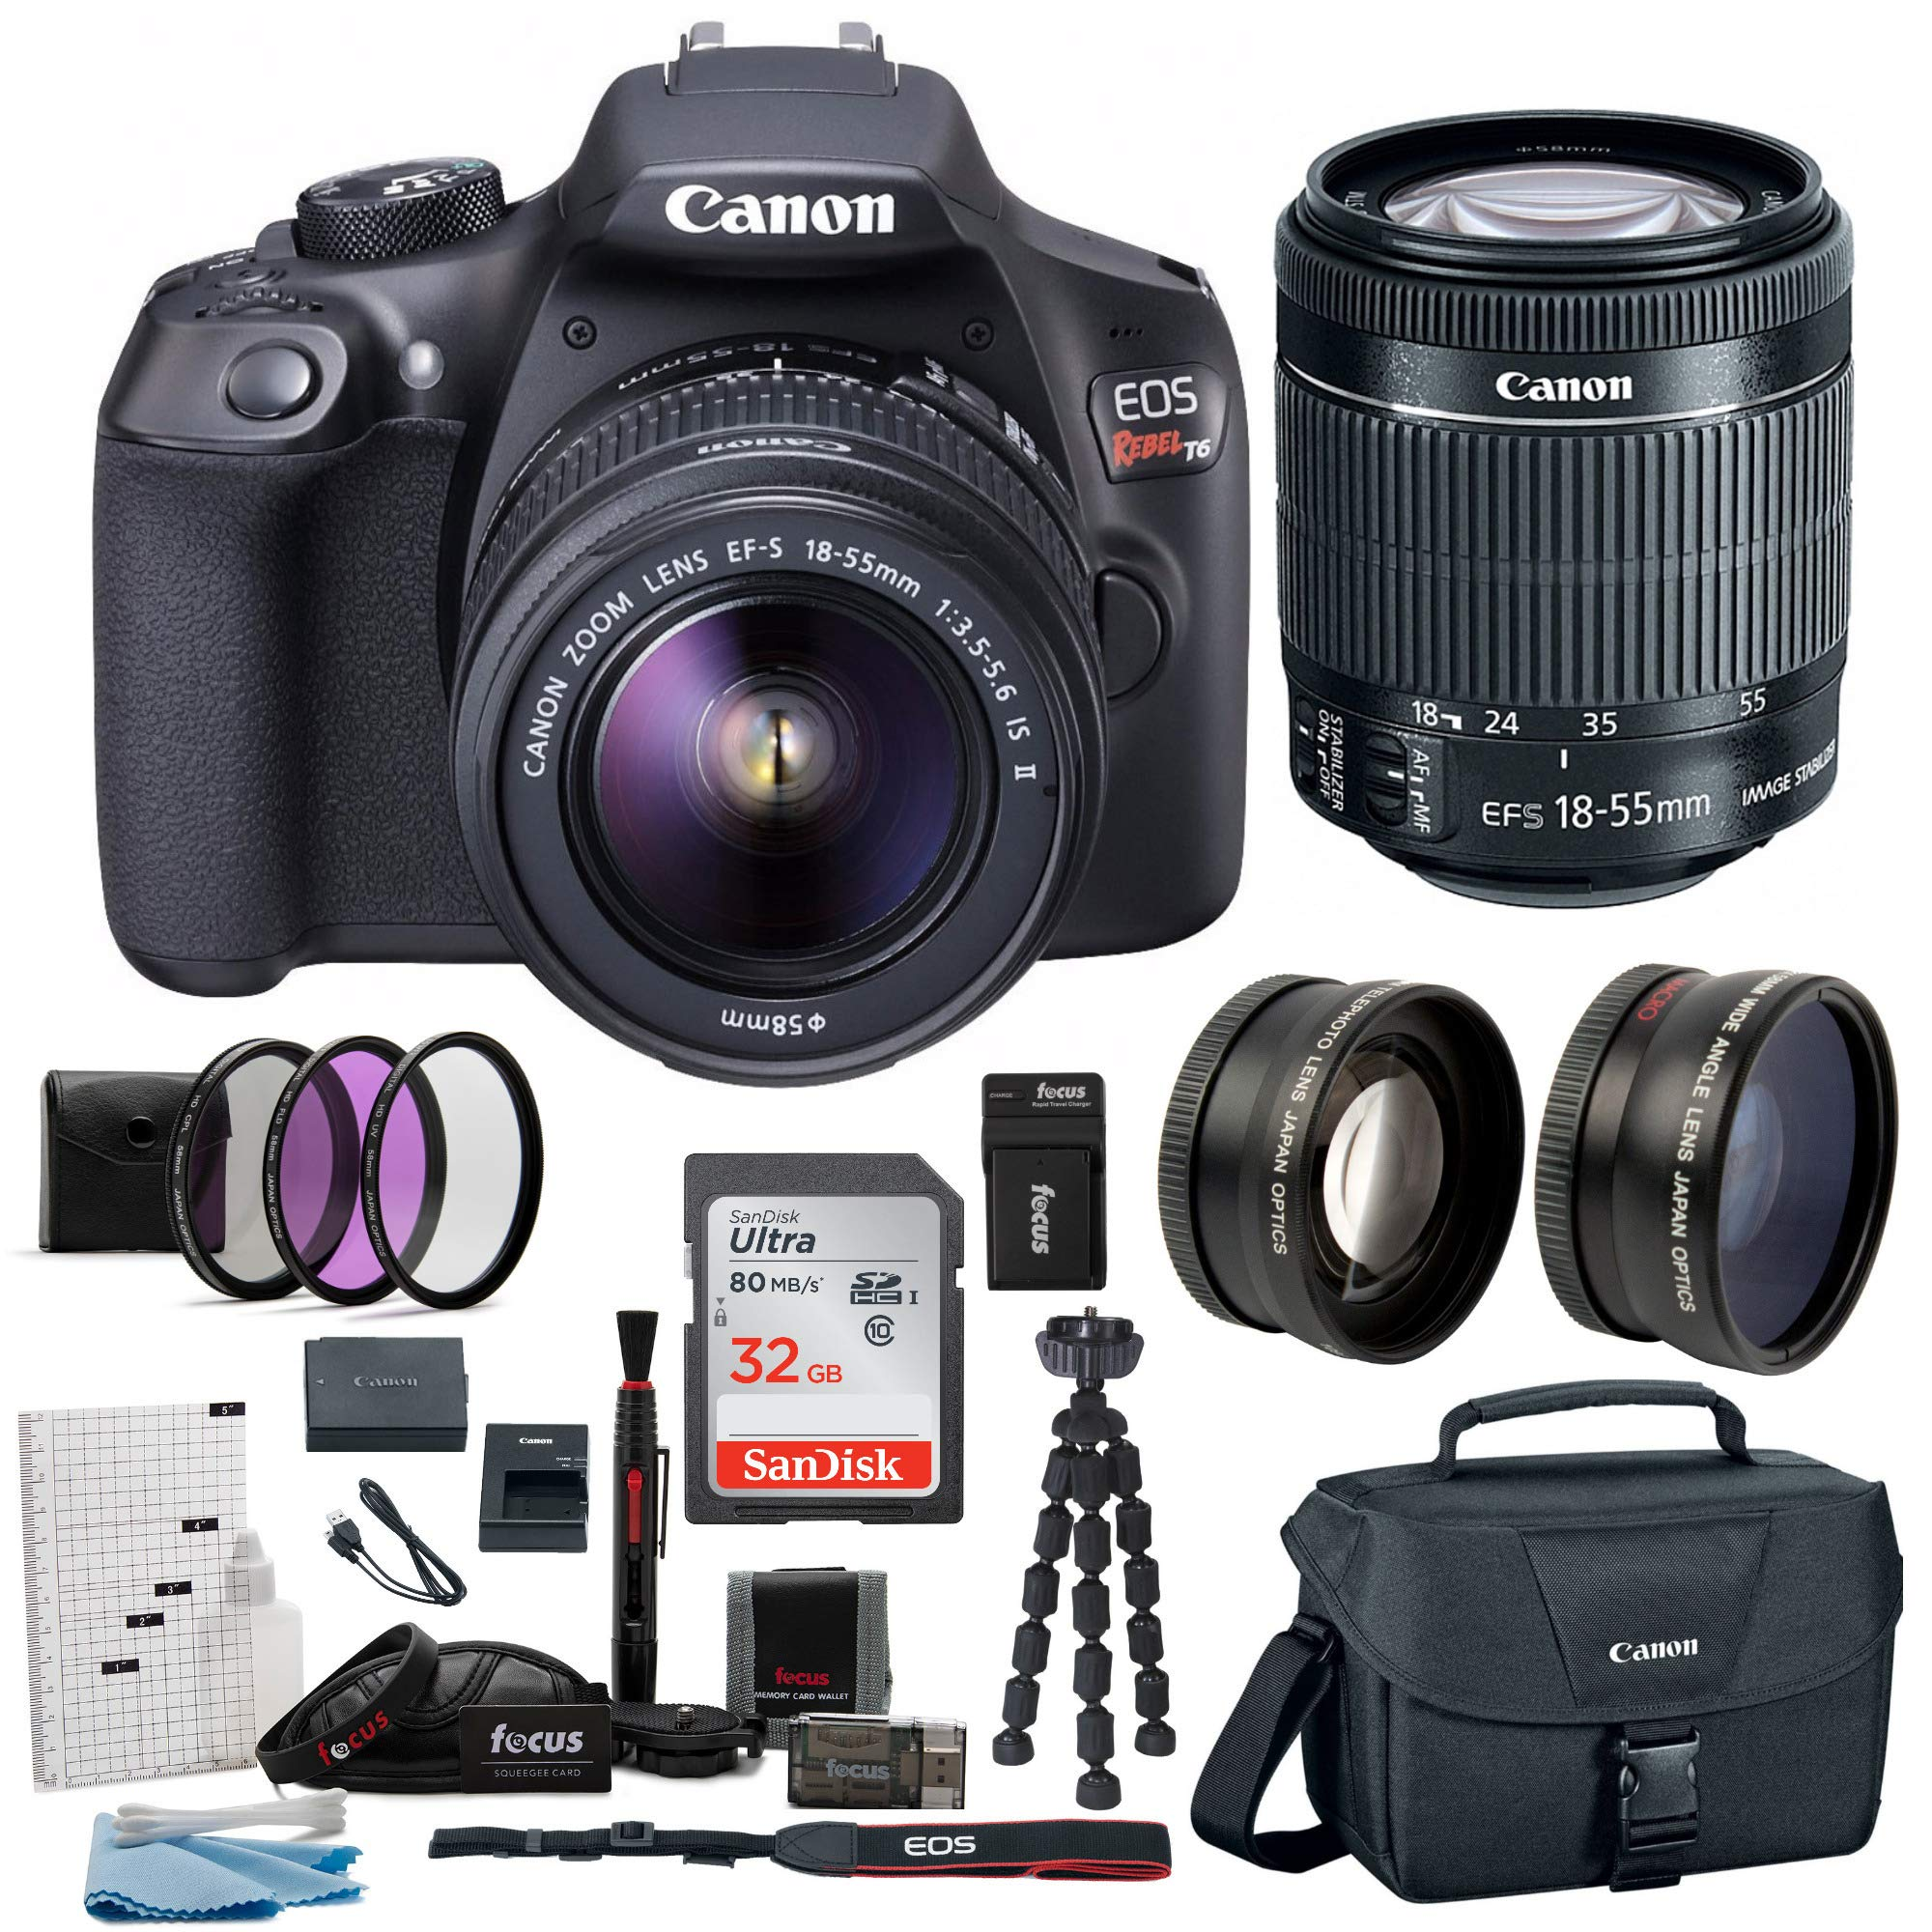 Canon EOS Rebel T6 Camera Accessory Kit with Lens and Carry Bag, 58mm - 3 Piece Filter Kit, 2 Piece Wide Lens Set, Replacement 1600mAh Battery and Charger, 32GB SD Card, 12'' Tripod & Cleaning Kit by Canon